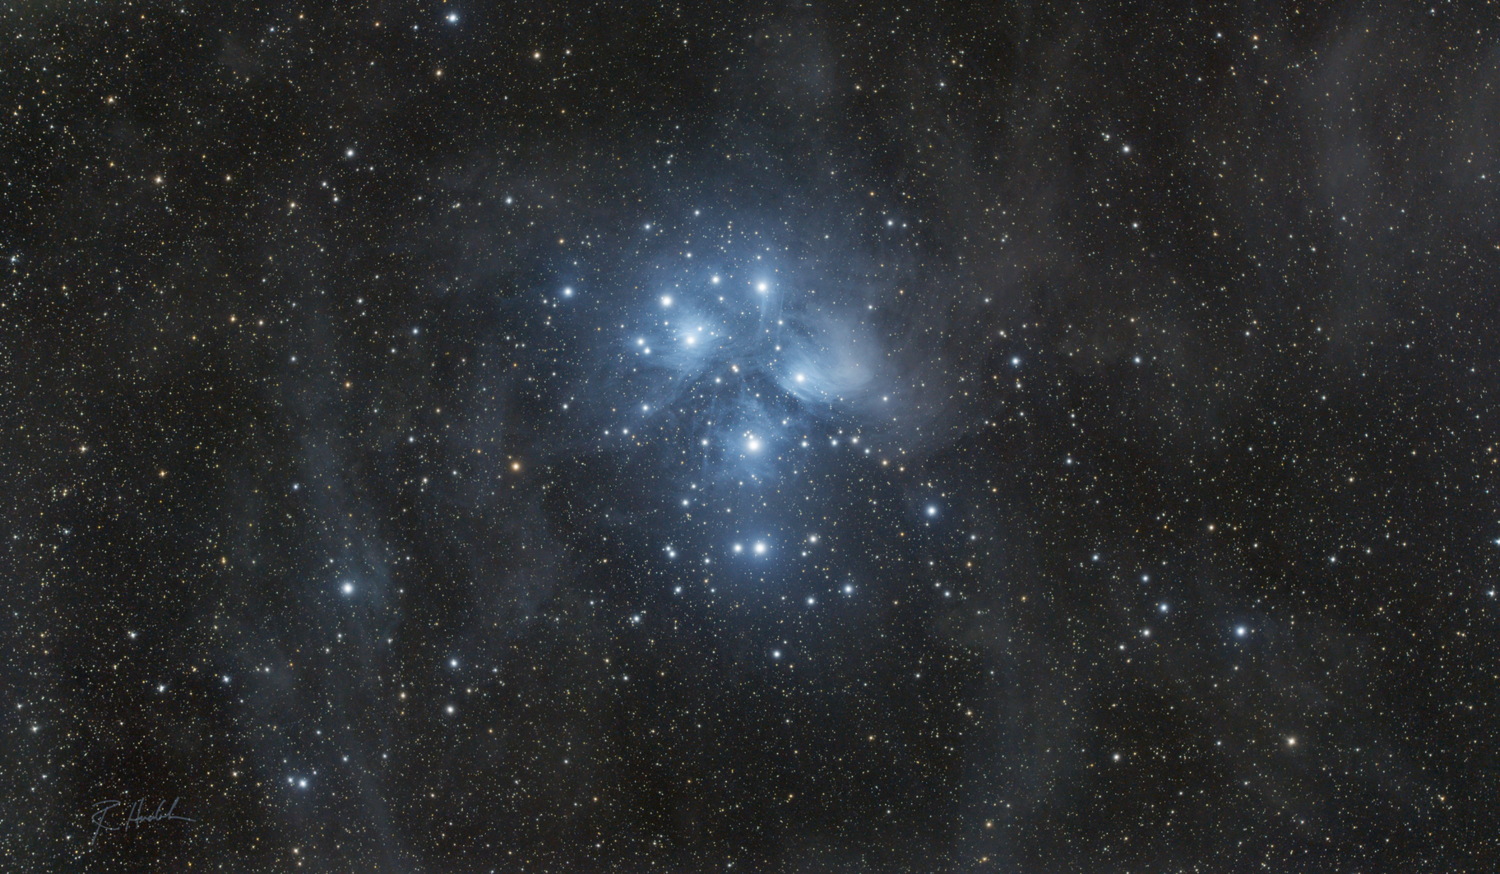 The Pleiades surrounded by dust lanes by Robert Huerbsch